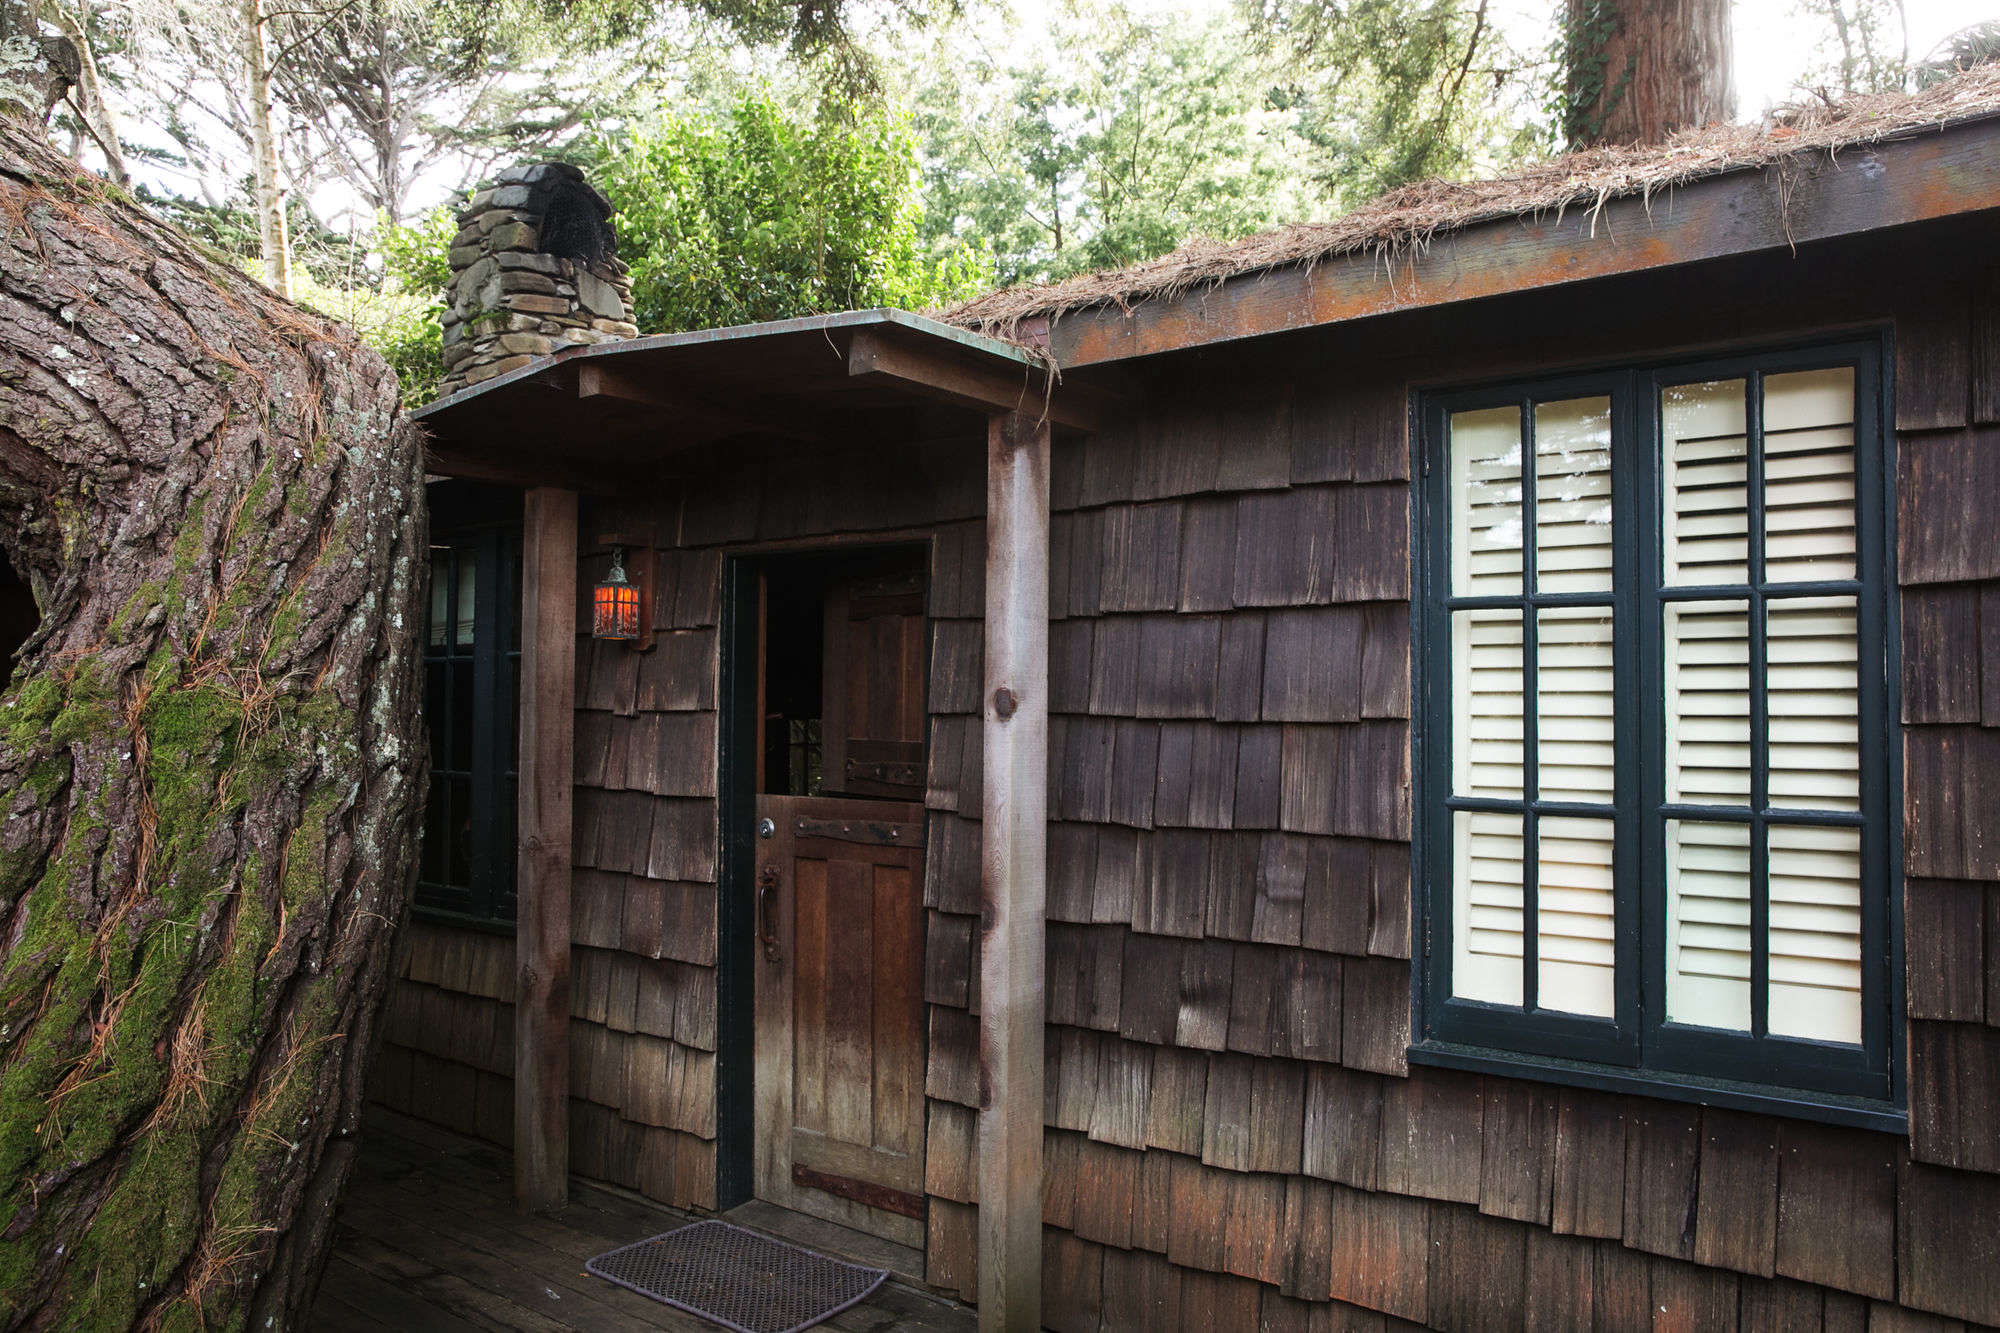 entrance into the \1900s fishing cabin. 21